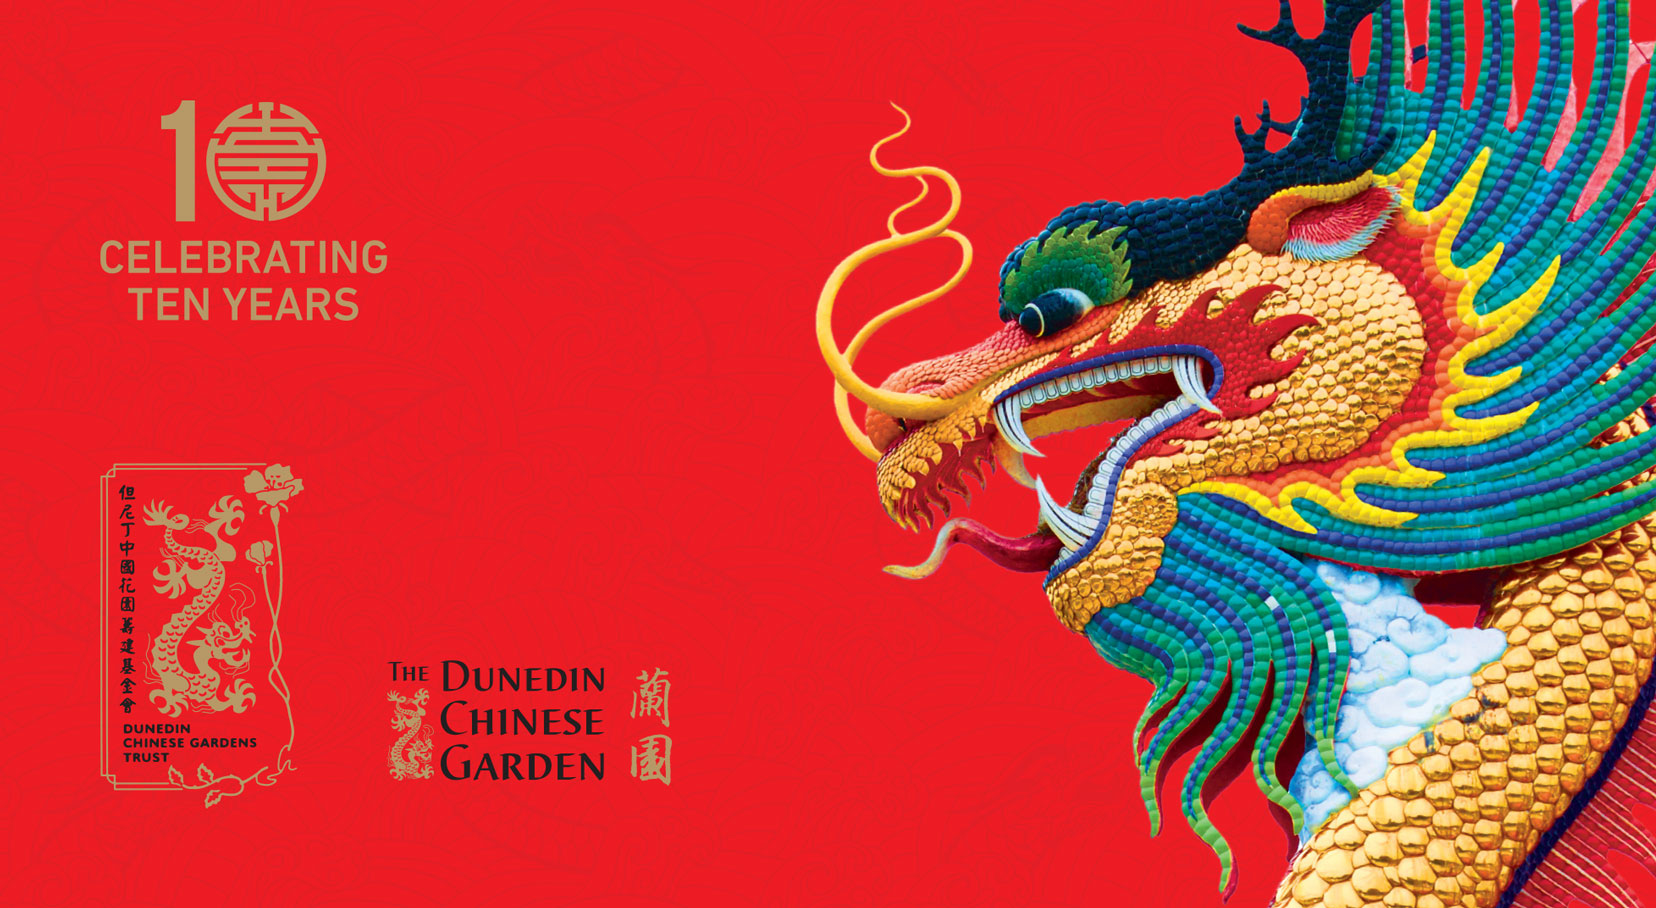 Dunedin Chinese Garden - Ten Year Celebrations